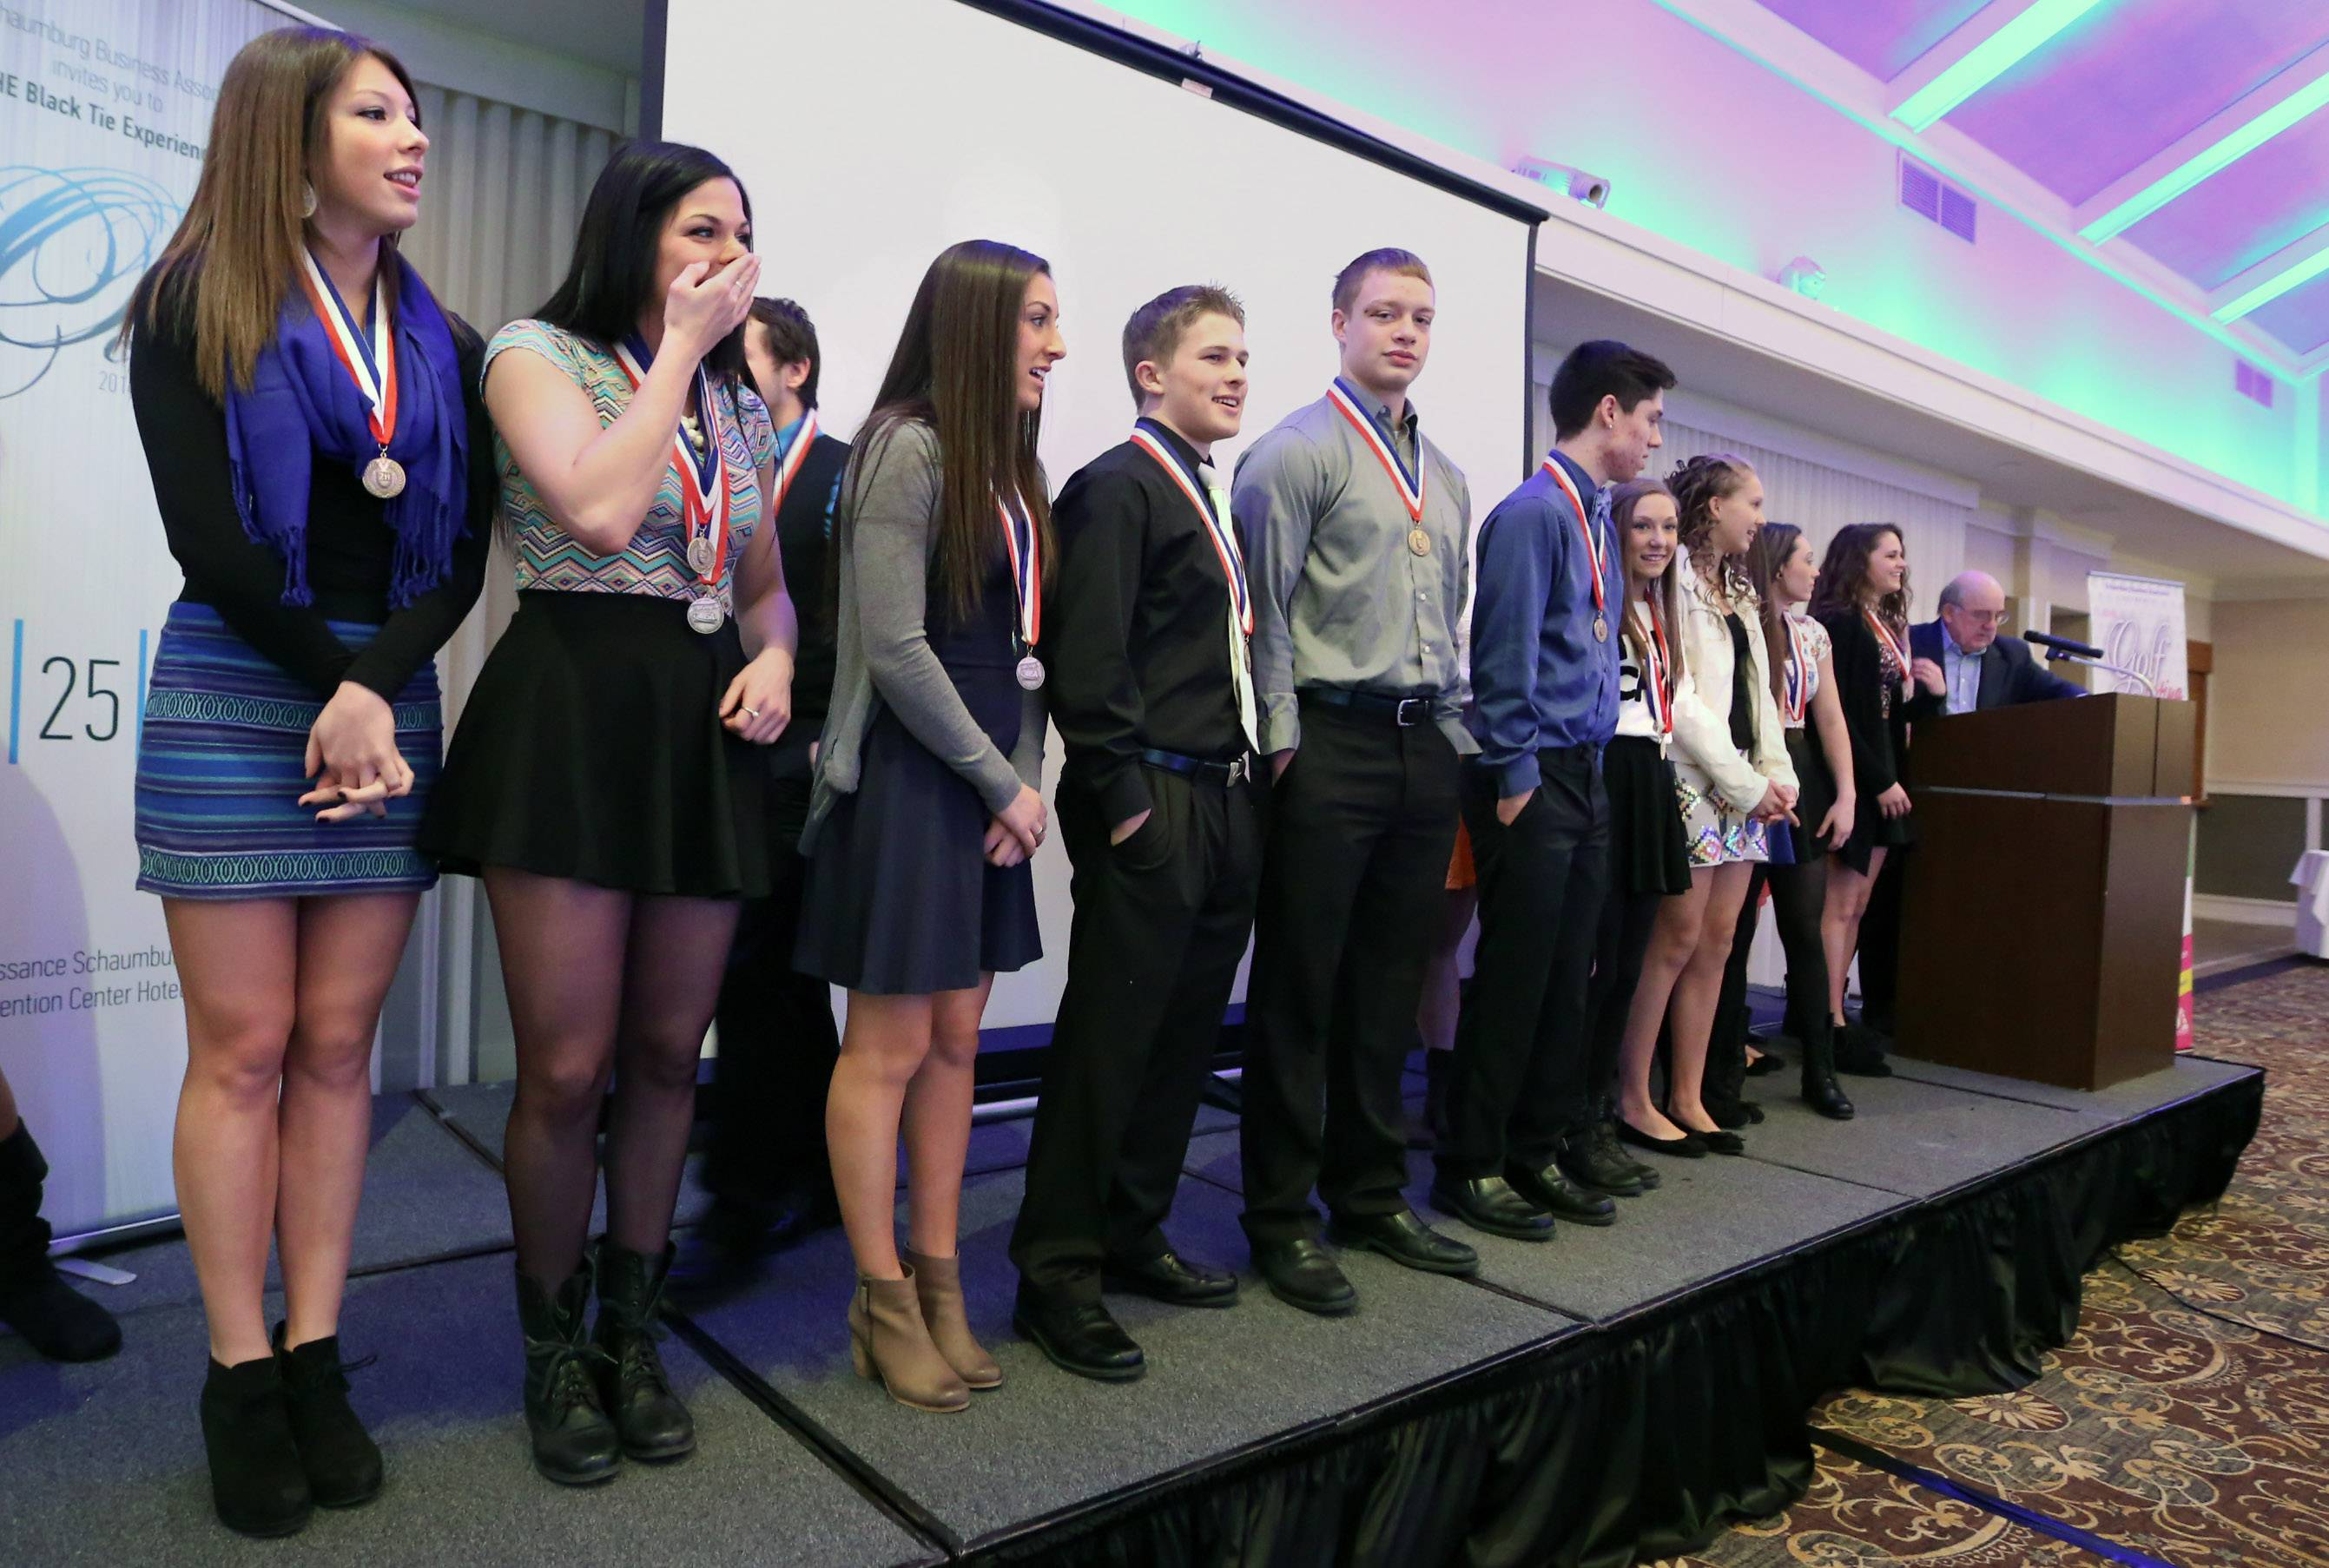 The 2014 state championship coed cheerleading squad from Conant High School was honored Tuesday by the Schaumburg Business Association during its monthly breakfast meeting.